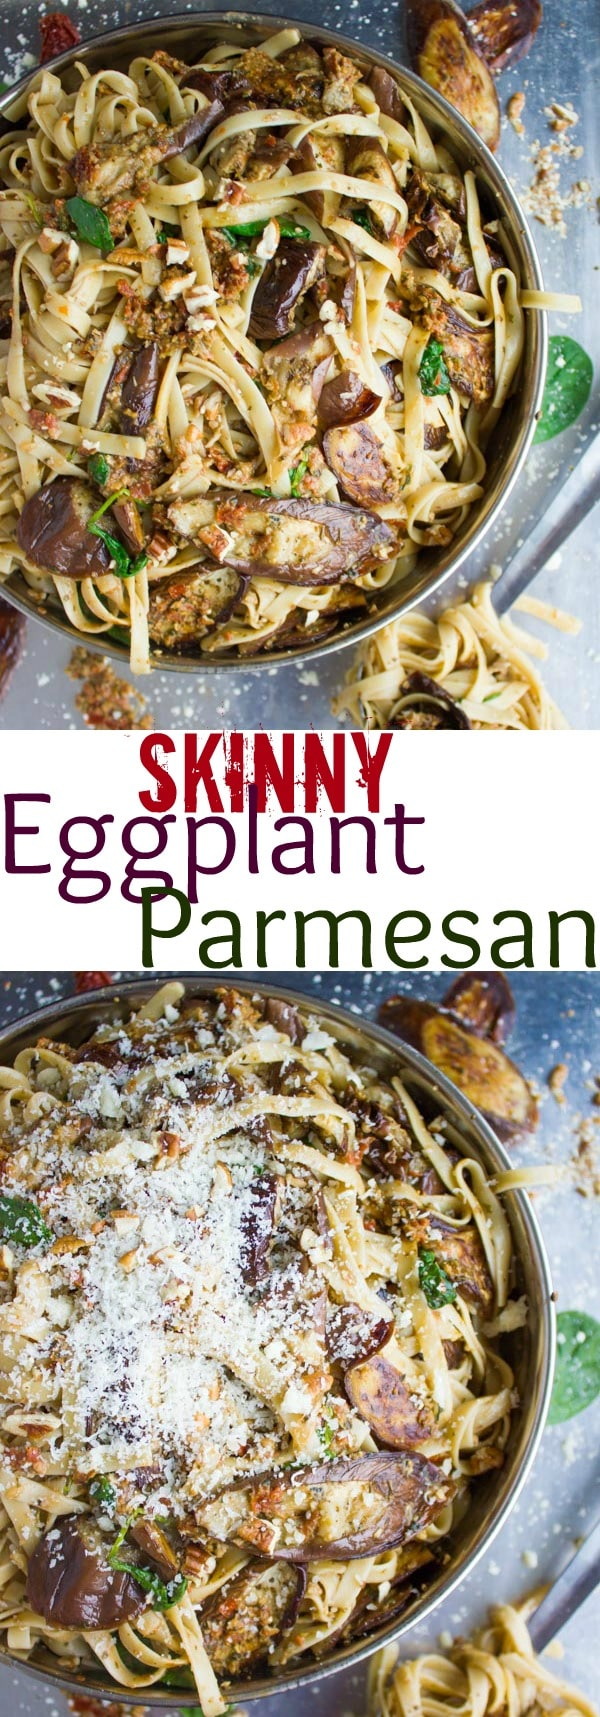 Skinny Eggplant Parmesan Pasta | Fans of Parmigiana will love this flavorful, light twist on an all-time favorite. The eggplant is roasted until tender, tossed with pasta and smothered with flavourful sun-dried tomato pesto. This lovely pasta dish is light, vegetarian and gluten-free.#vegetarian, #pasta, #Italian, #easydinner, #healthy, #parmigiana